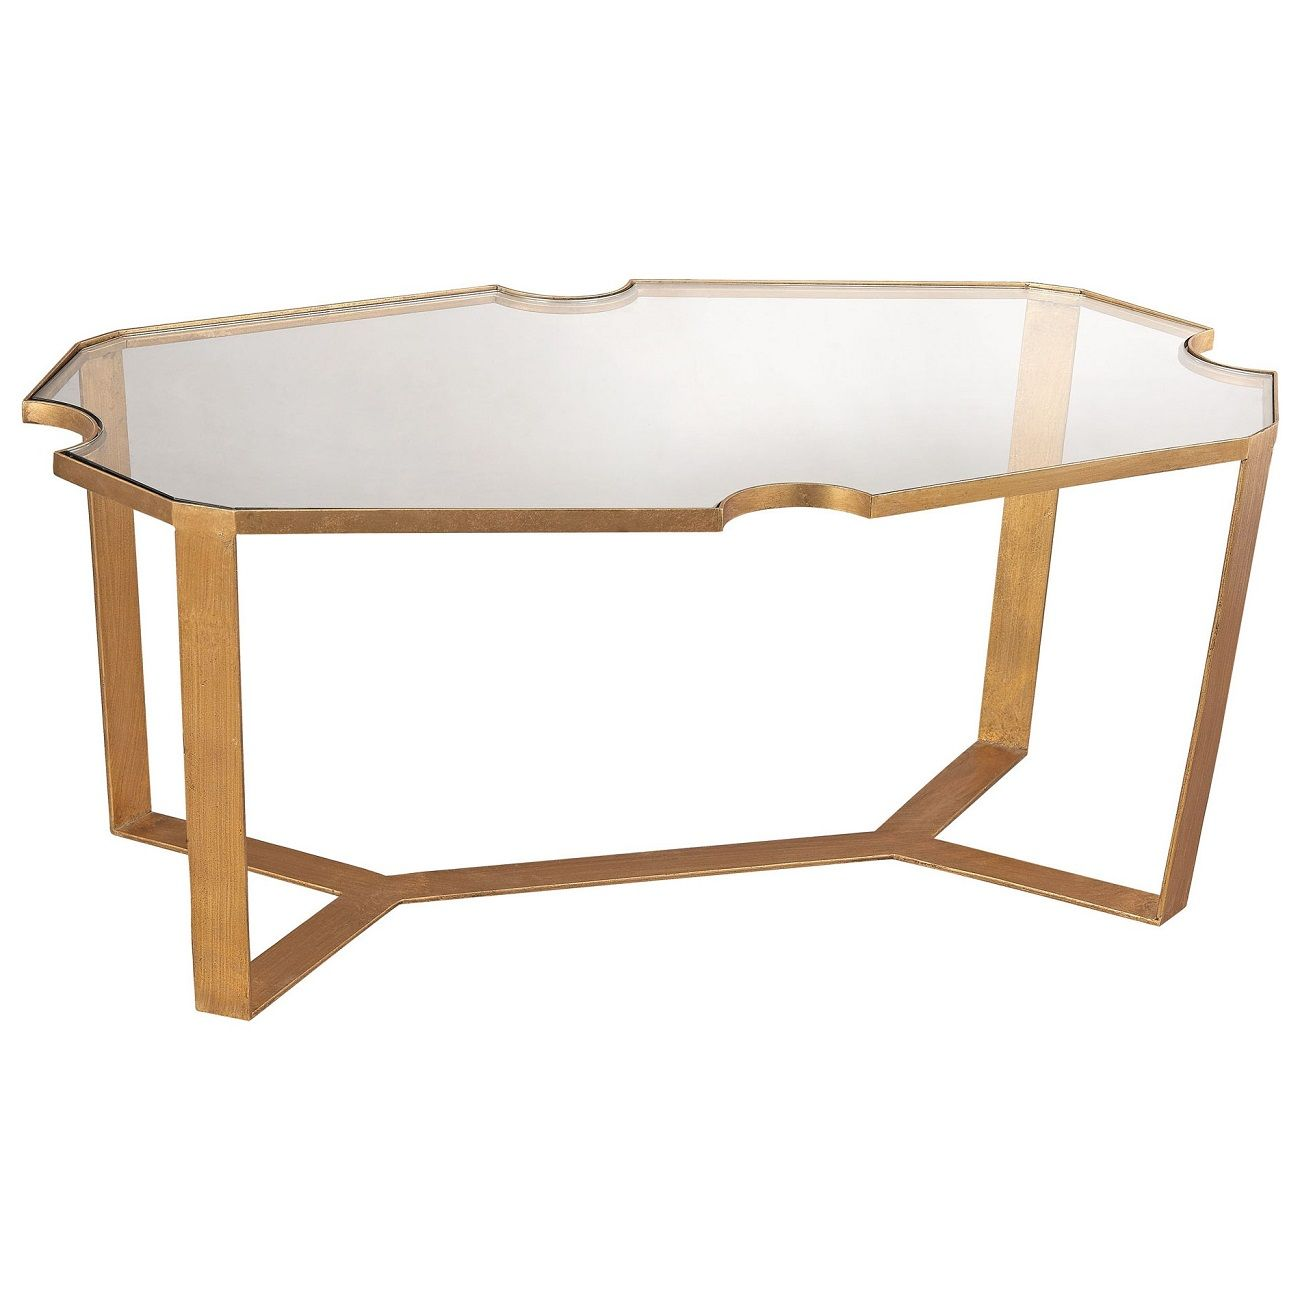 Cutout top martini table along with being the basis of world